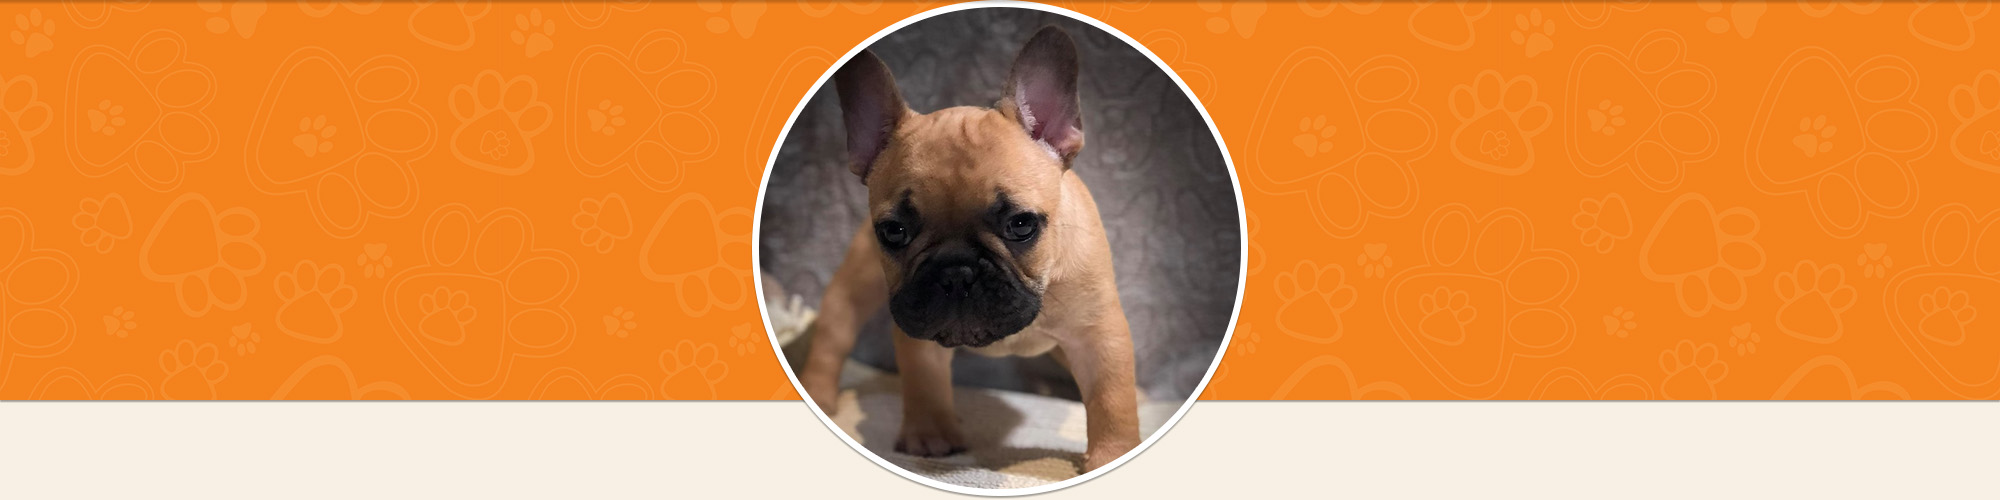 Standing French Bulldog Puppy